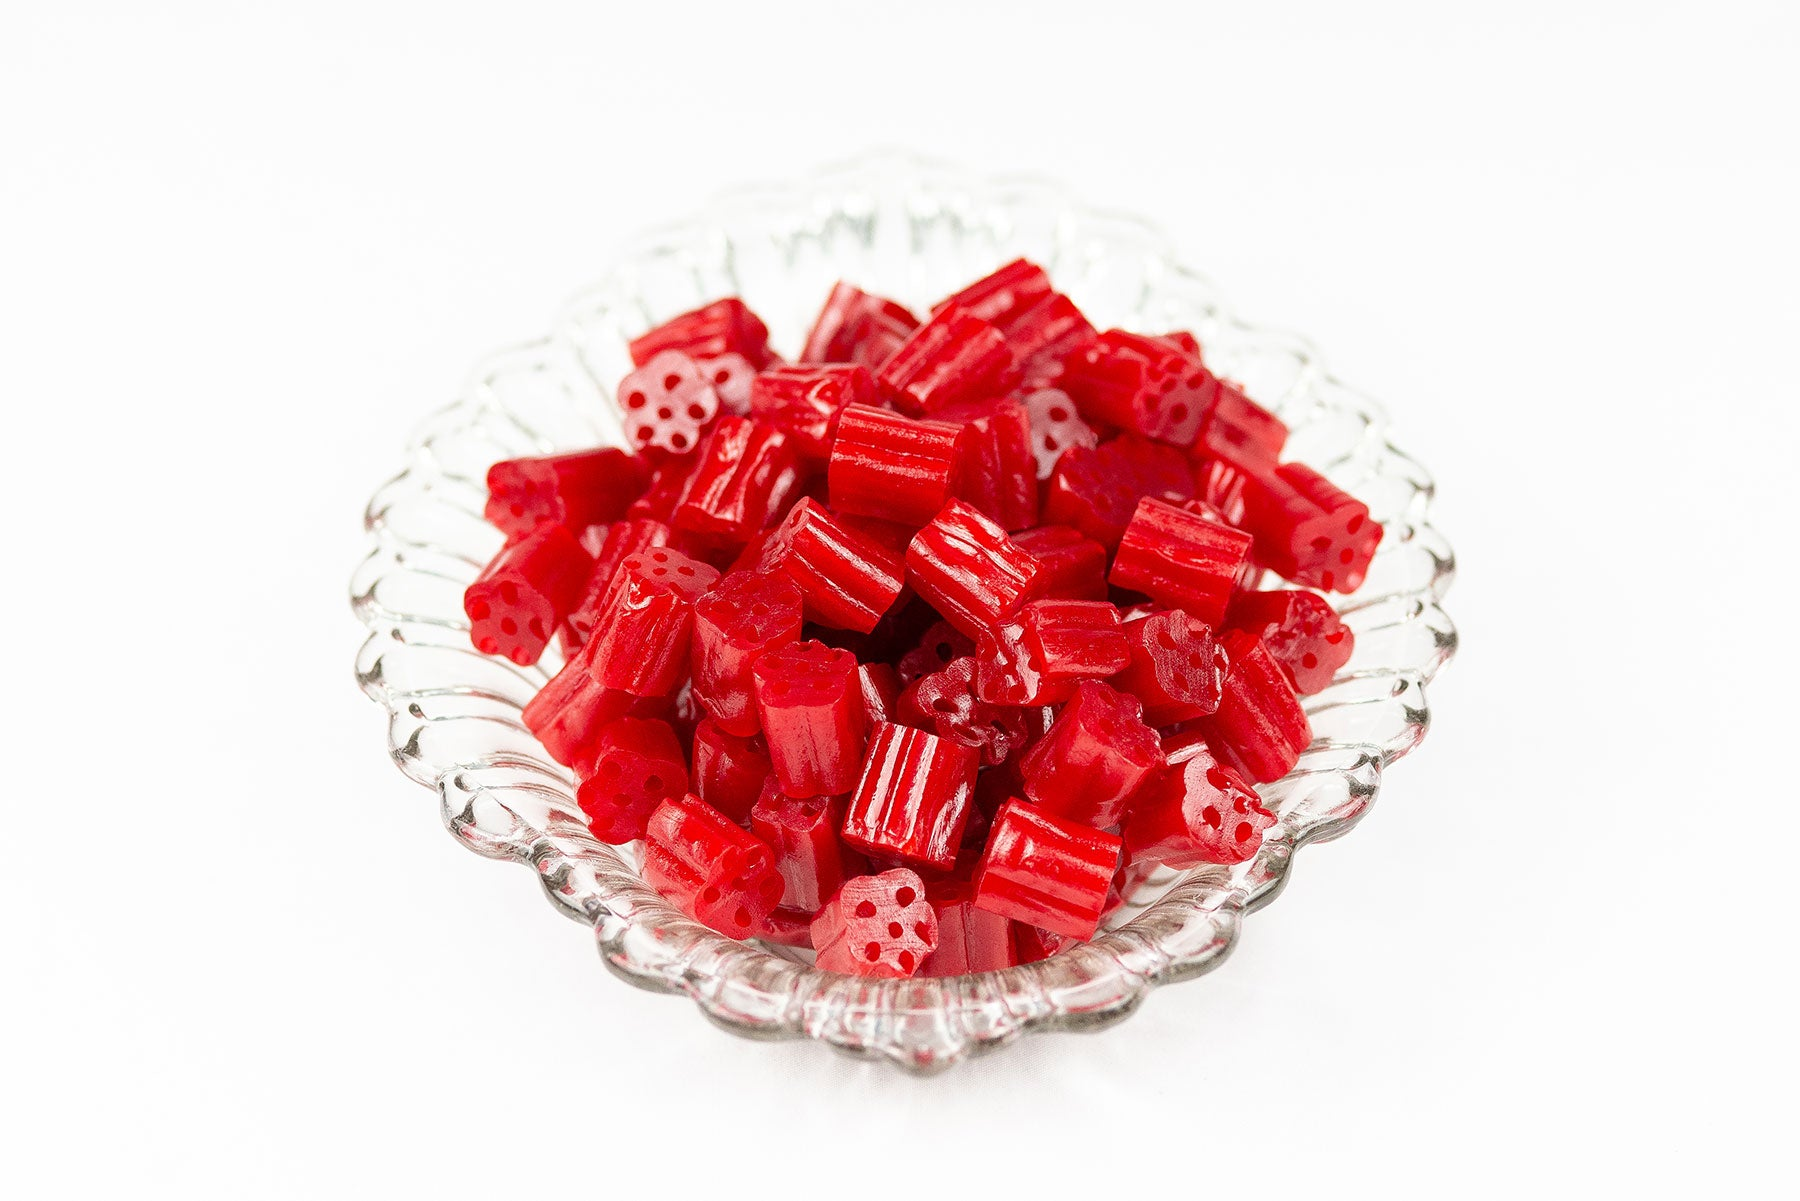 Licorice Red Bites